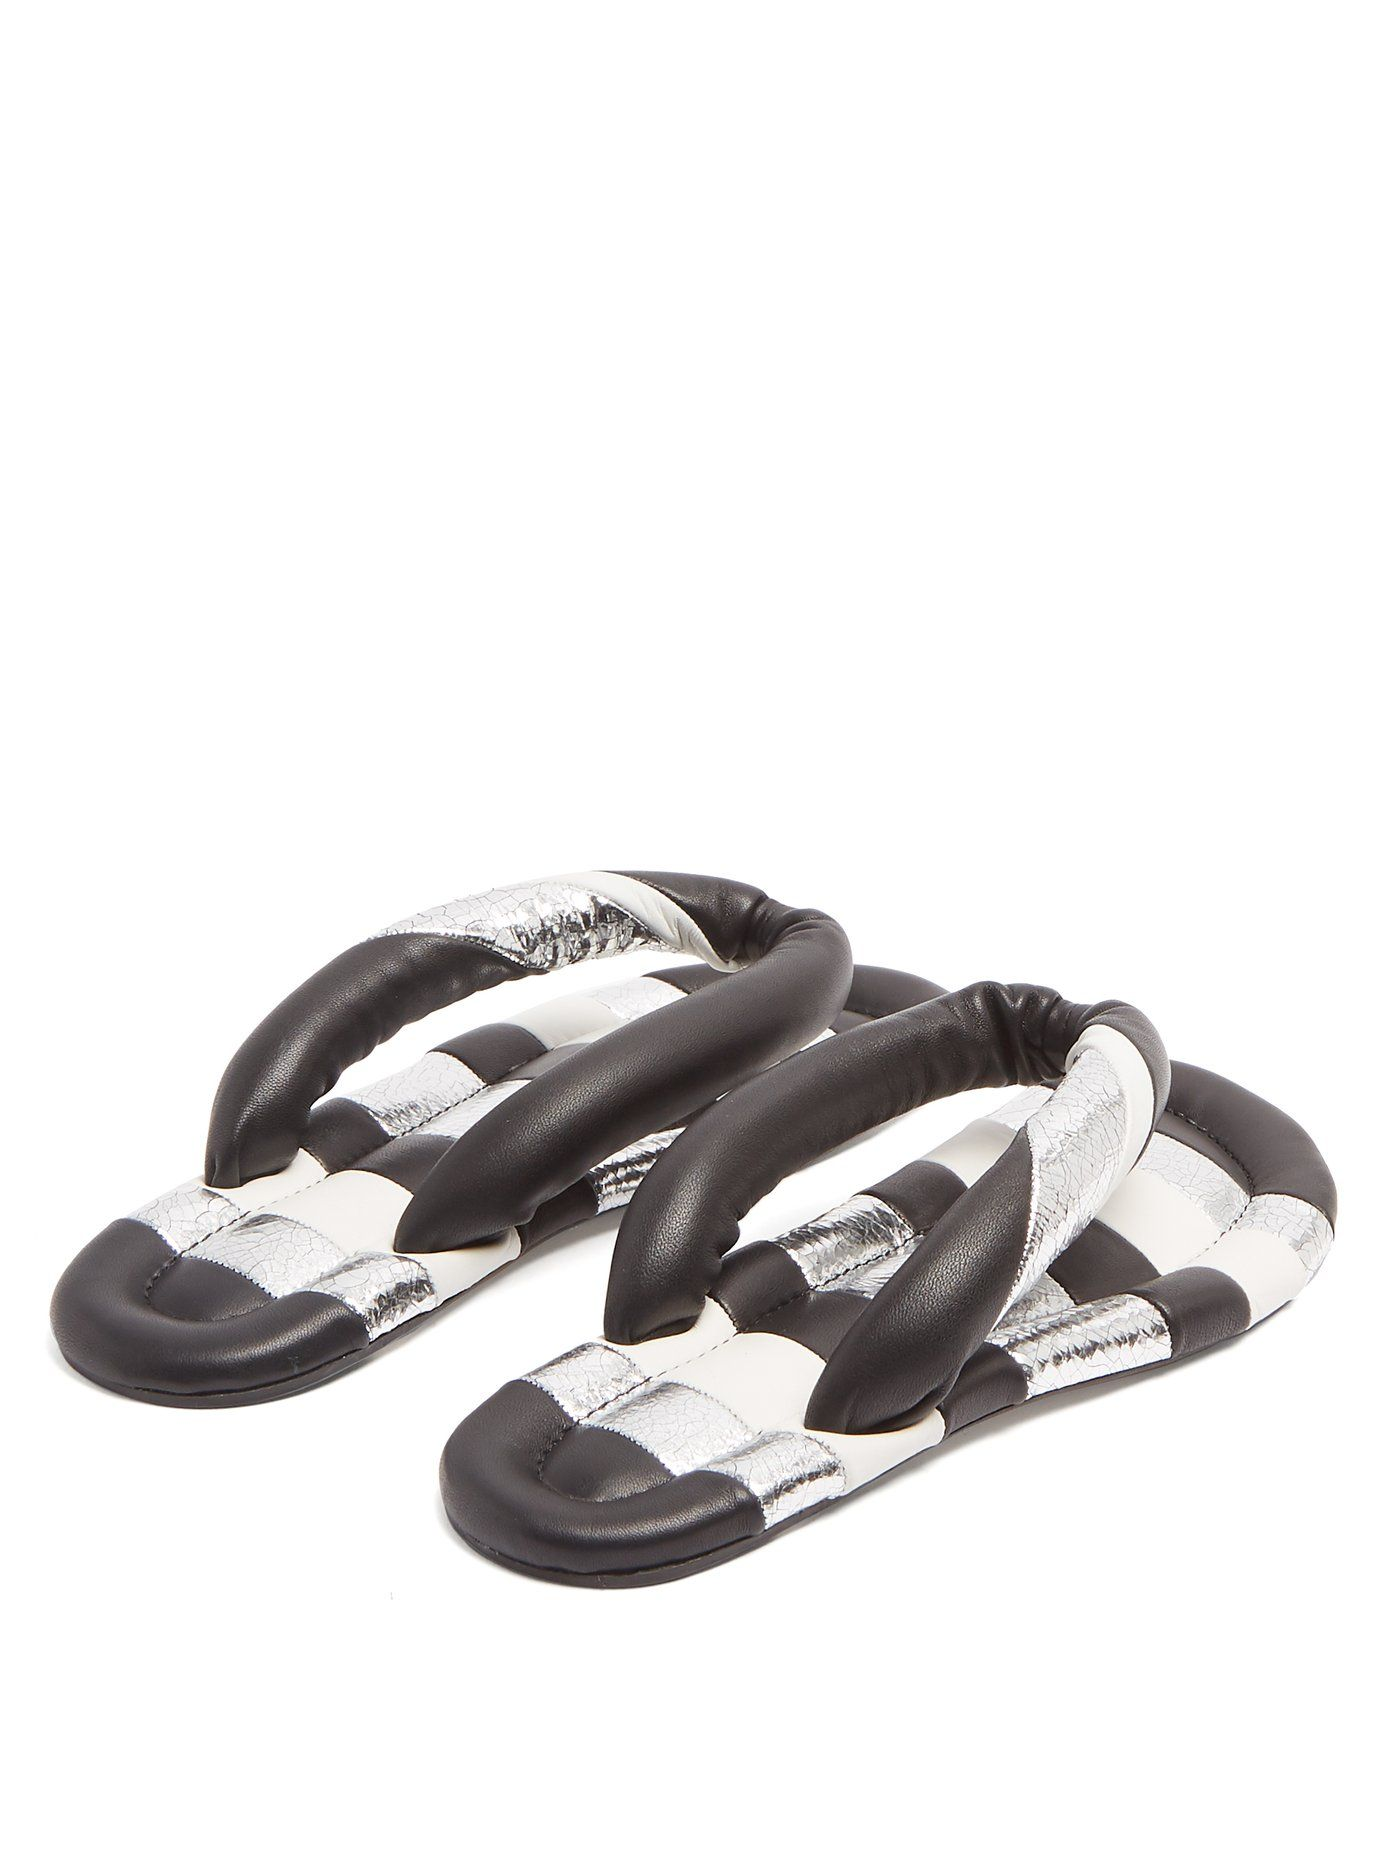 f228dcf17e1 Eckily striped leather sandals | Isabel Marant | MATCHESFASHION.COM Leather  Sandals, Shoes,